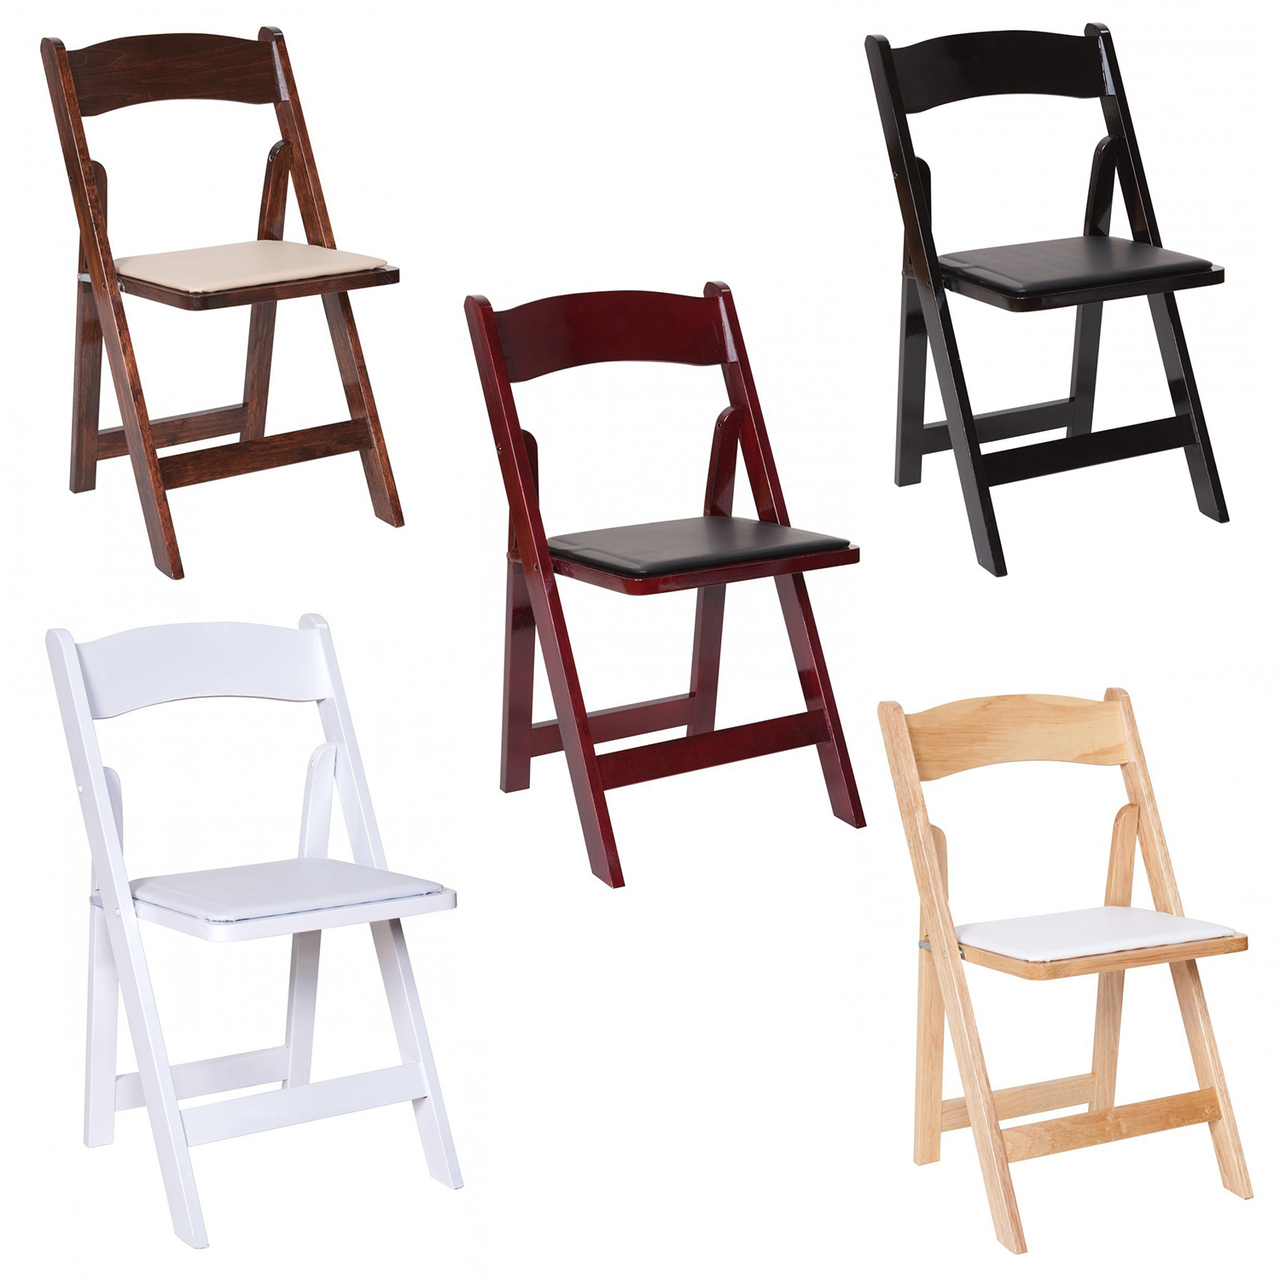 Surprising Premier Series Wedding And Event Wood Folding Chair With Vinyl Seat Pad Free Storage Bag Caraccident5 Cool Chair Designs And Ideas Caraccident5Info